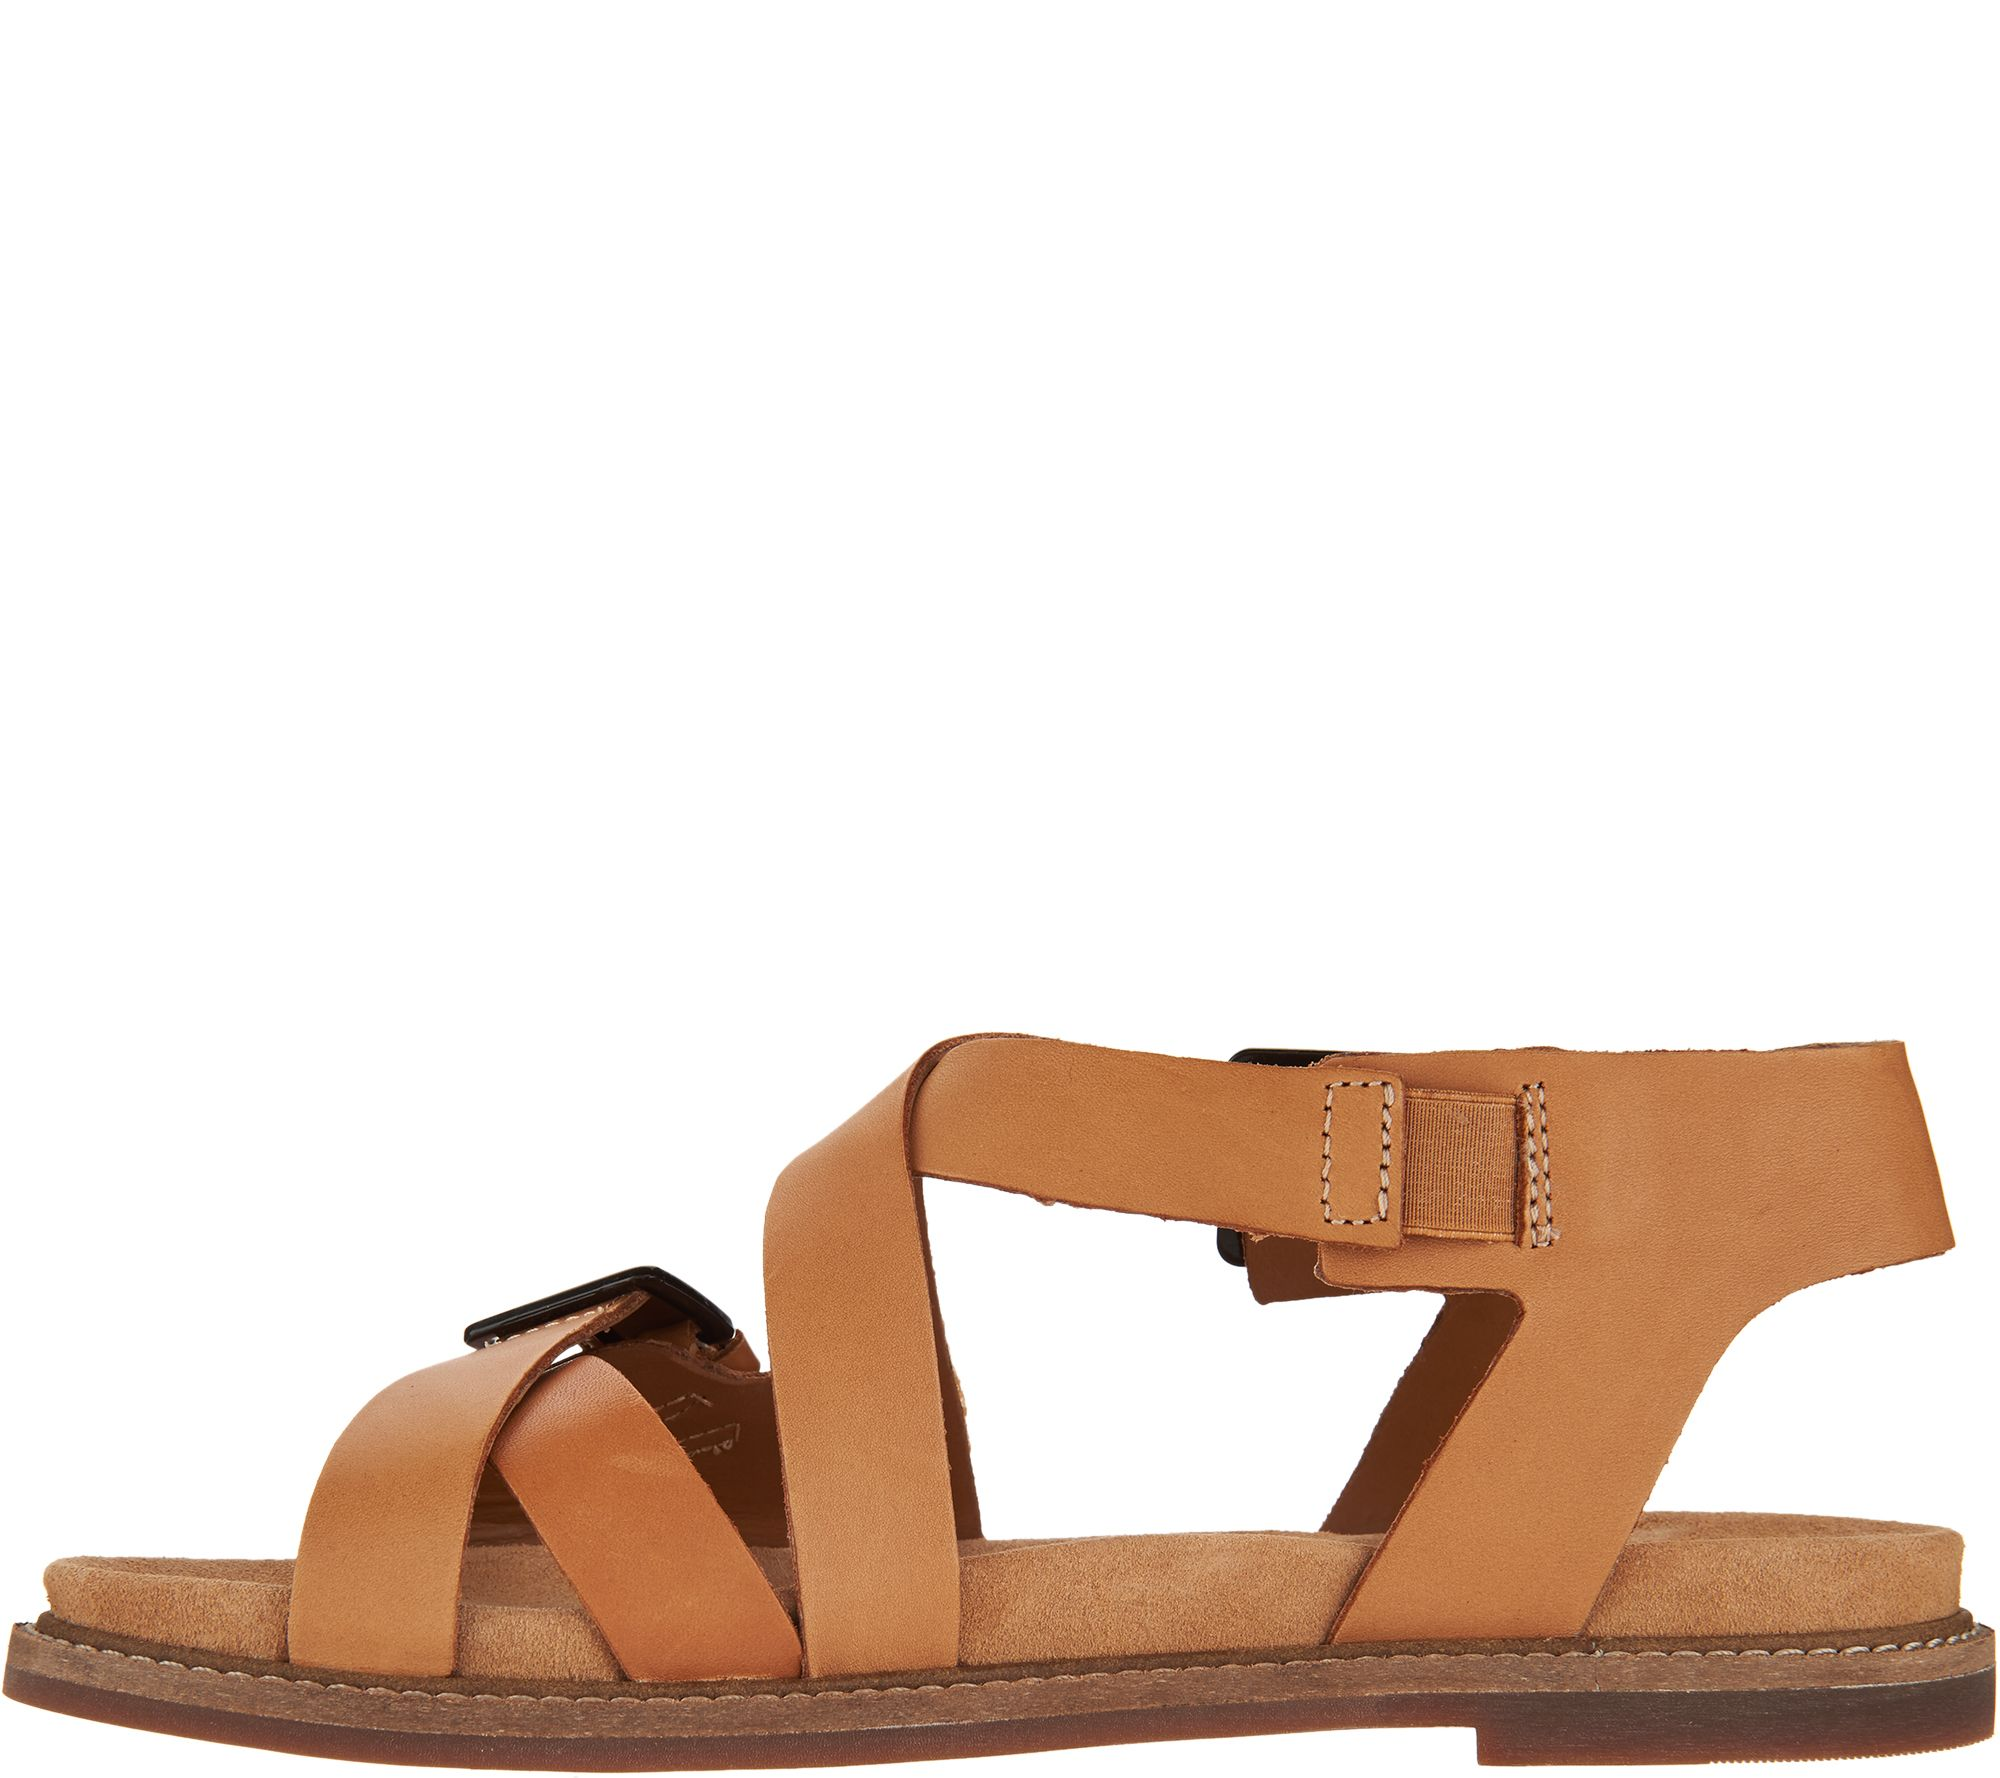 1473af881f77 Clarks Artisan Leather Criss Cross Sandals - Corsio Bambi - Page 1 — QVC.com